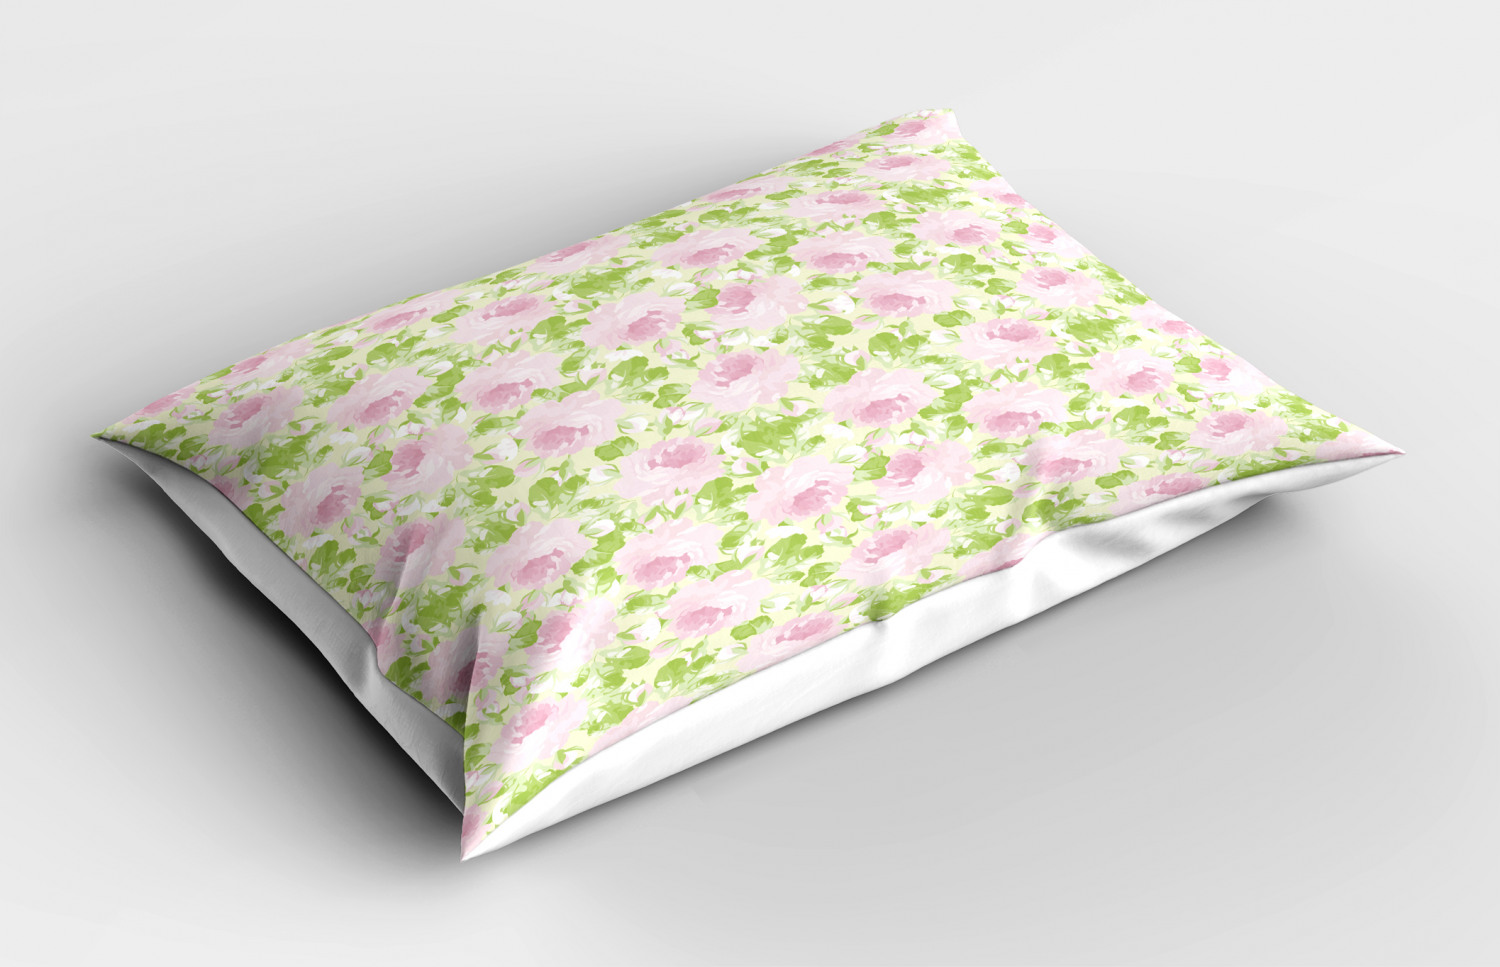 Shabby-Chic-Pillow-Sham-Decorative-Pillowcase-3-Sizes-Bedroom-Decor-Ambesonne thumbnail 3